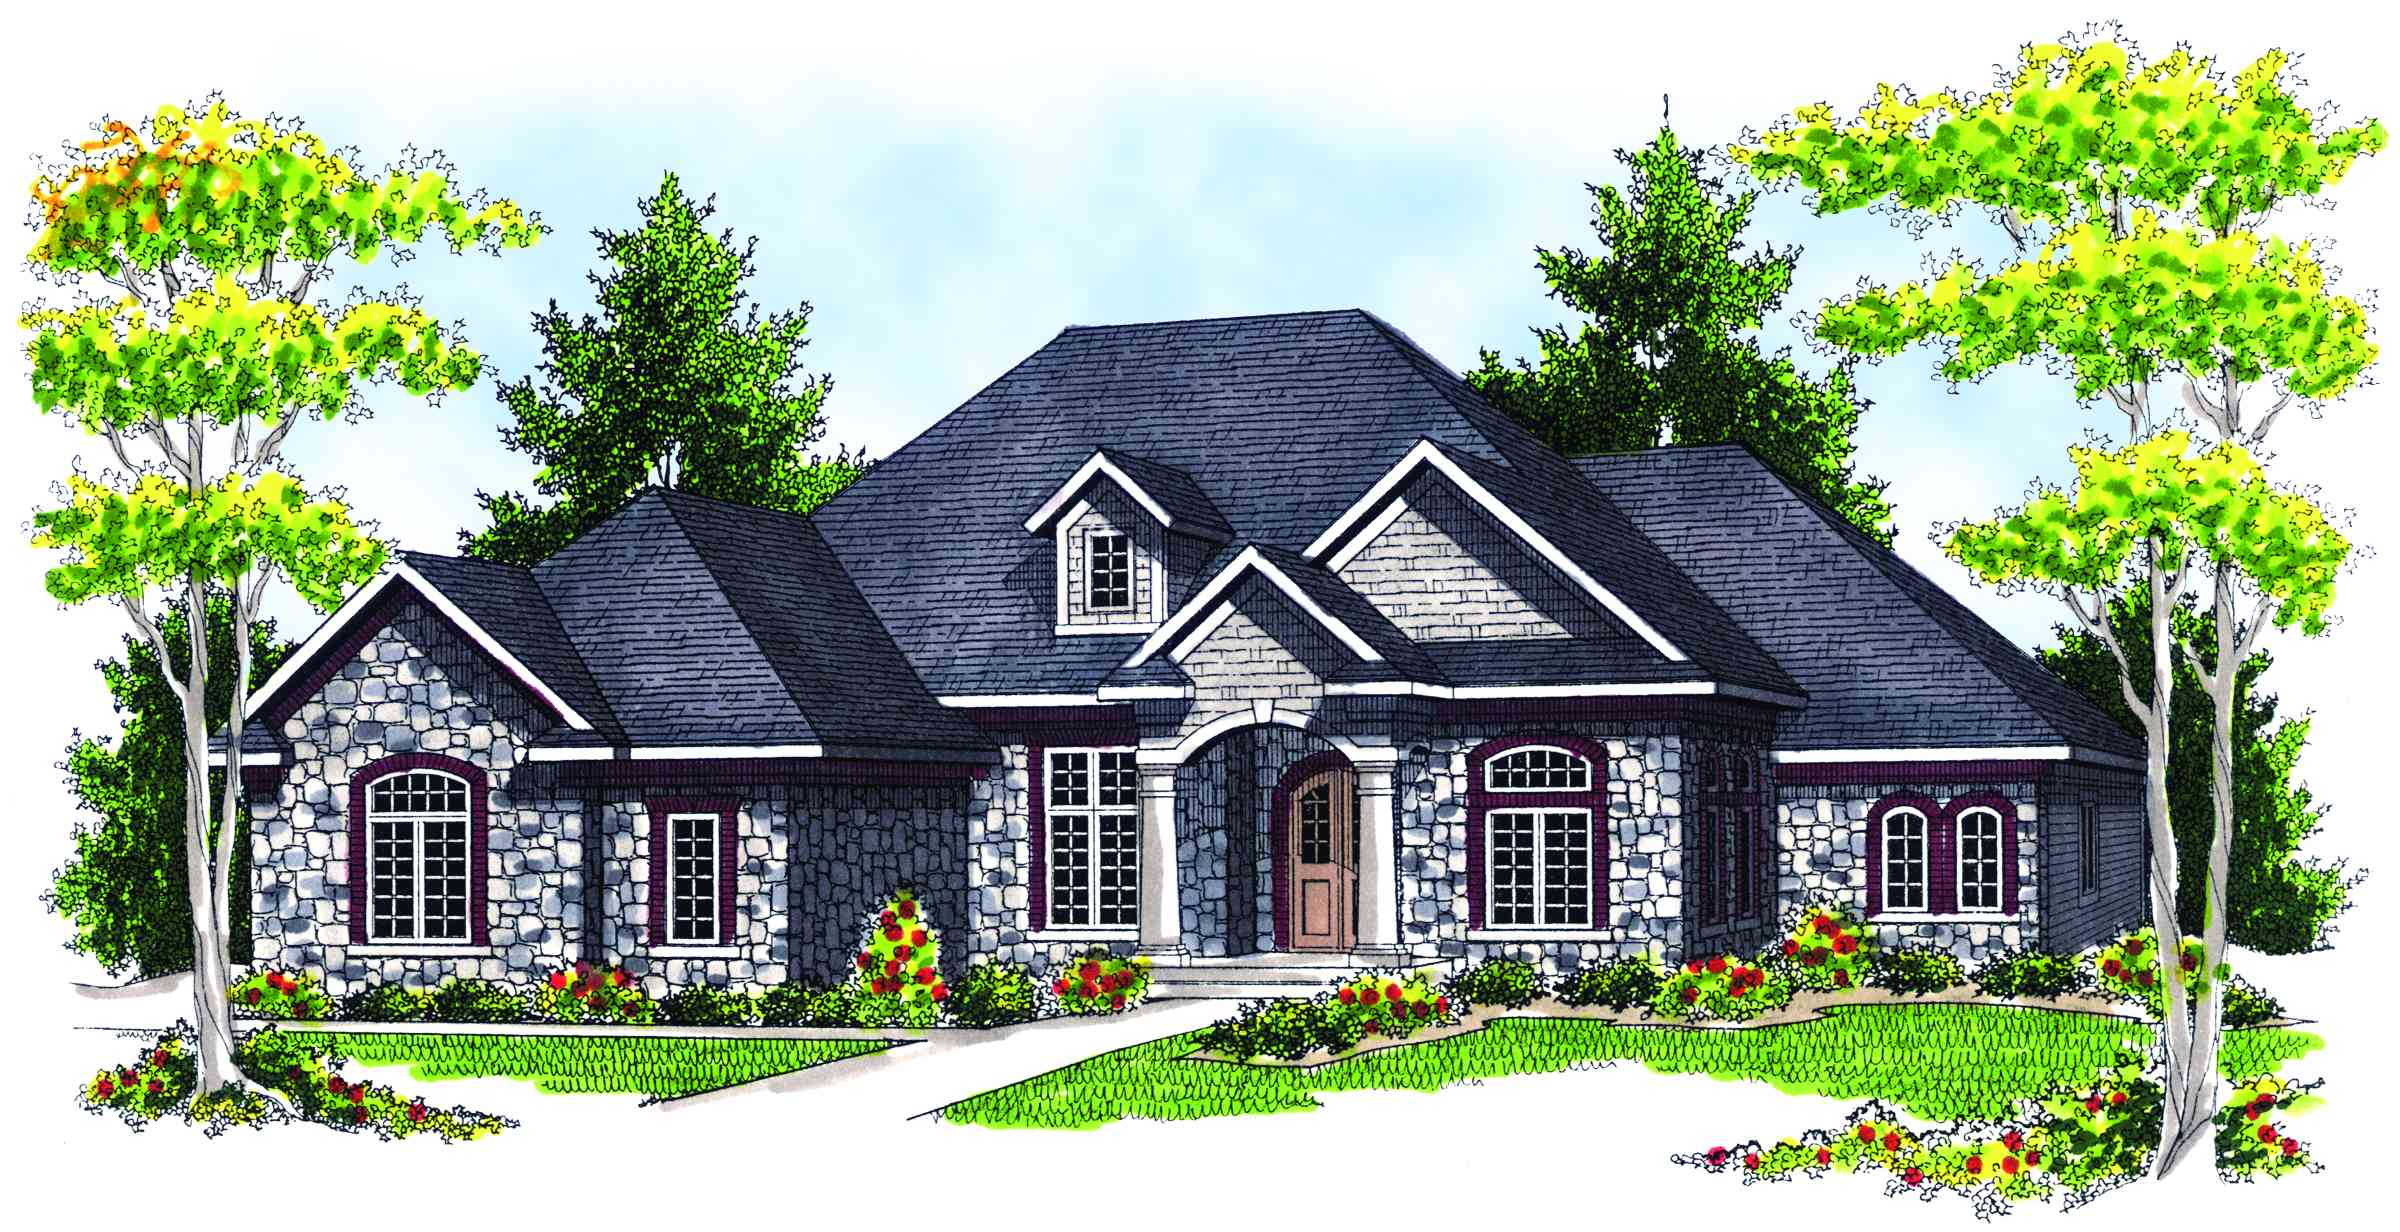 French Country Ranch House Plans - Home Design Ideas